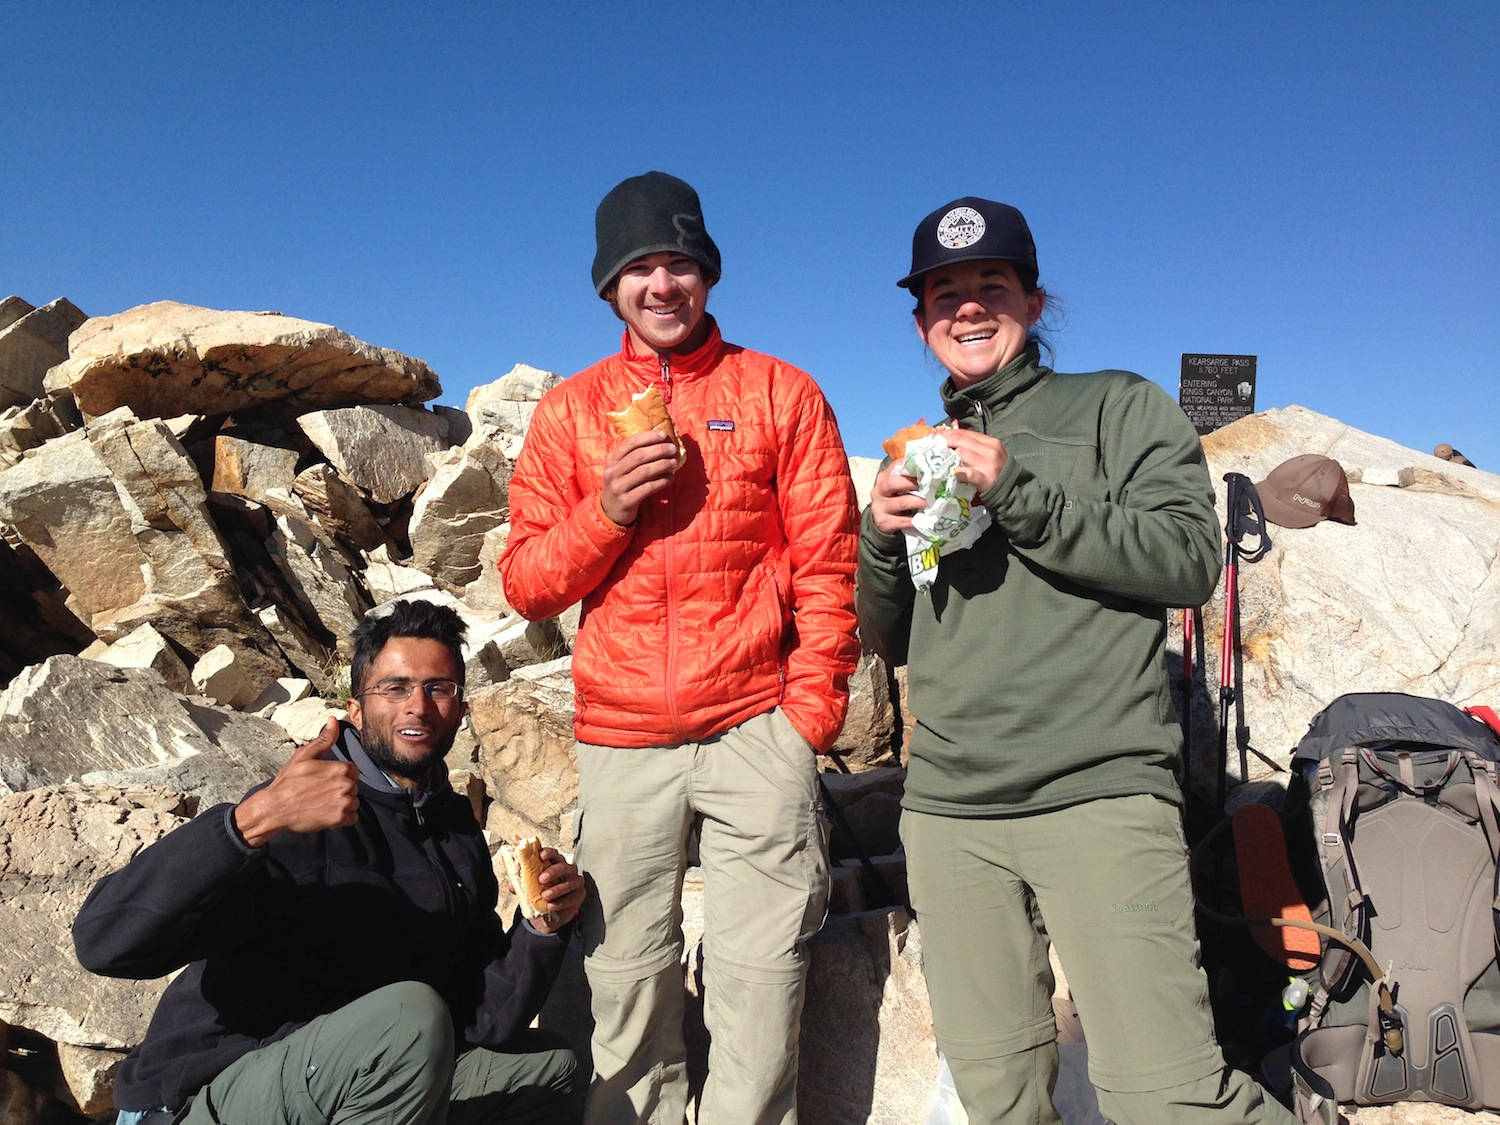 JMT hikers Sunny, Phillip and Emily are loving life and a sando on Kearsarge Pass